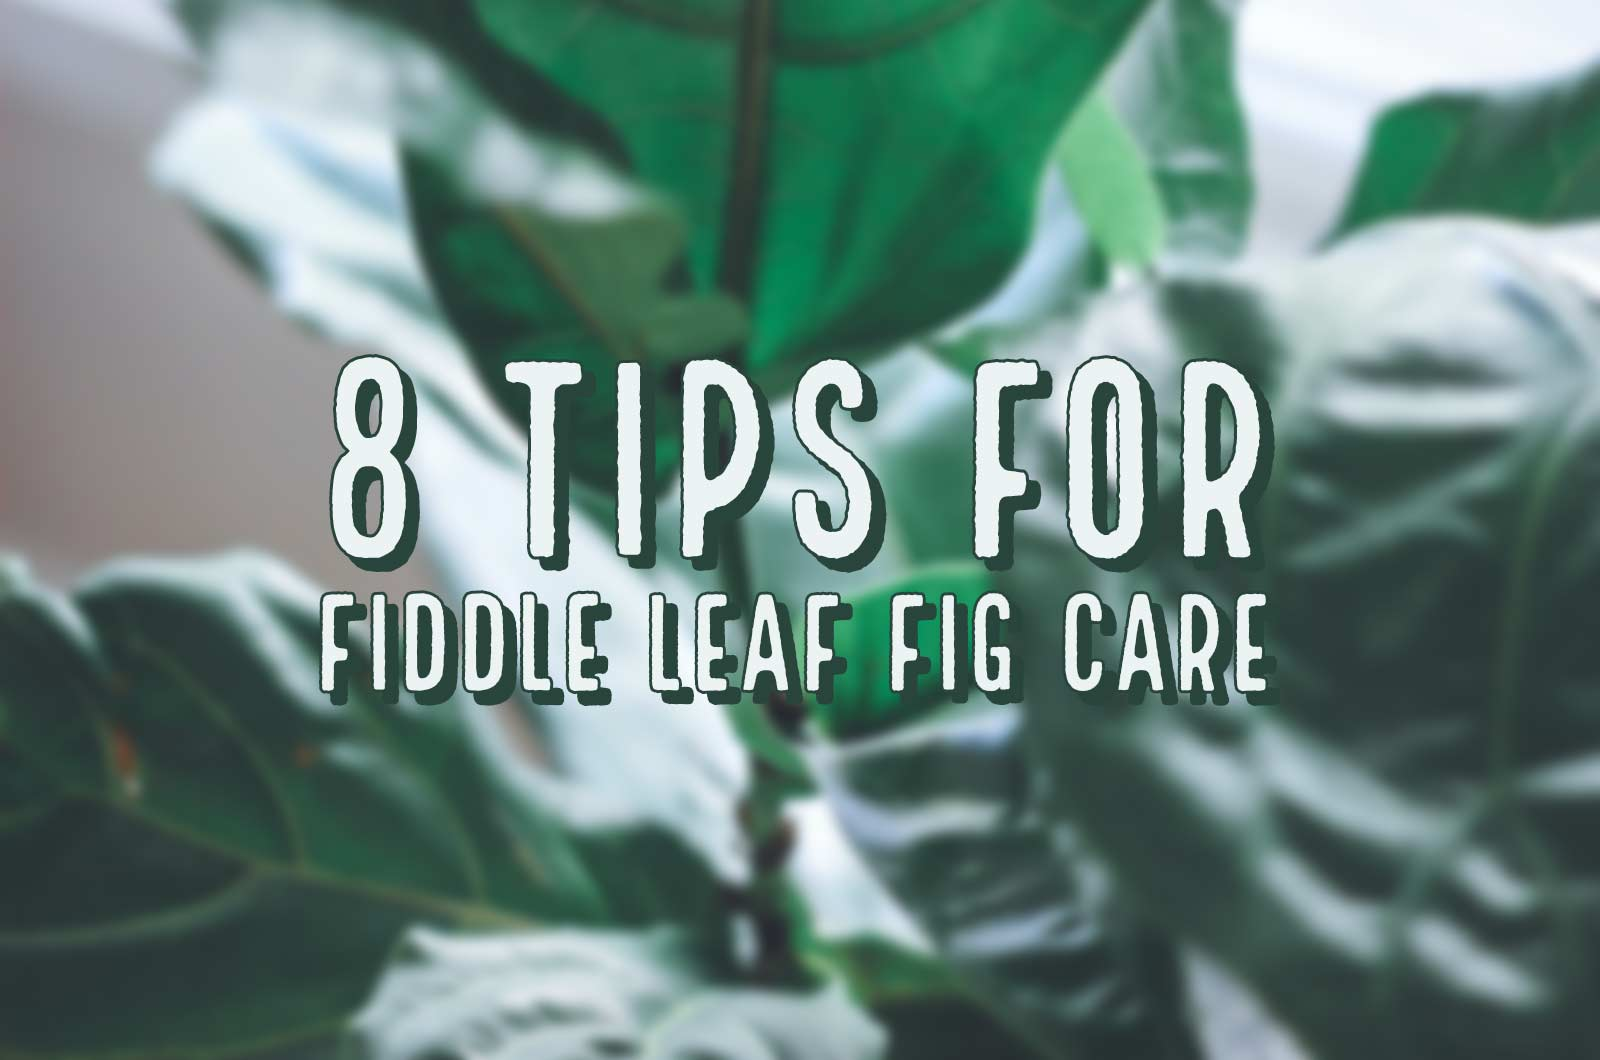 fiddle_leaf_fig_tree_care_tips_by_marphyl_phytoplankton_main